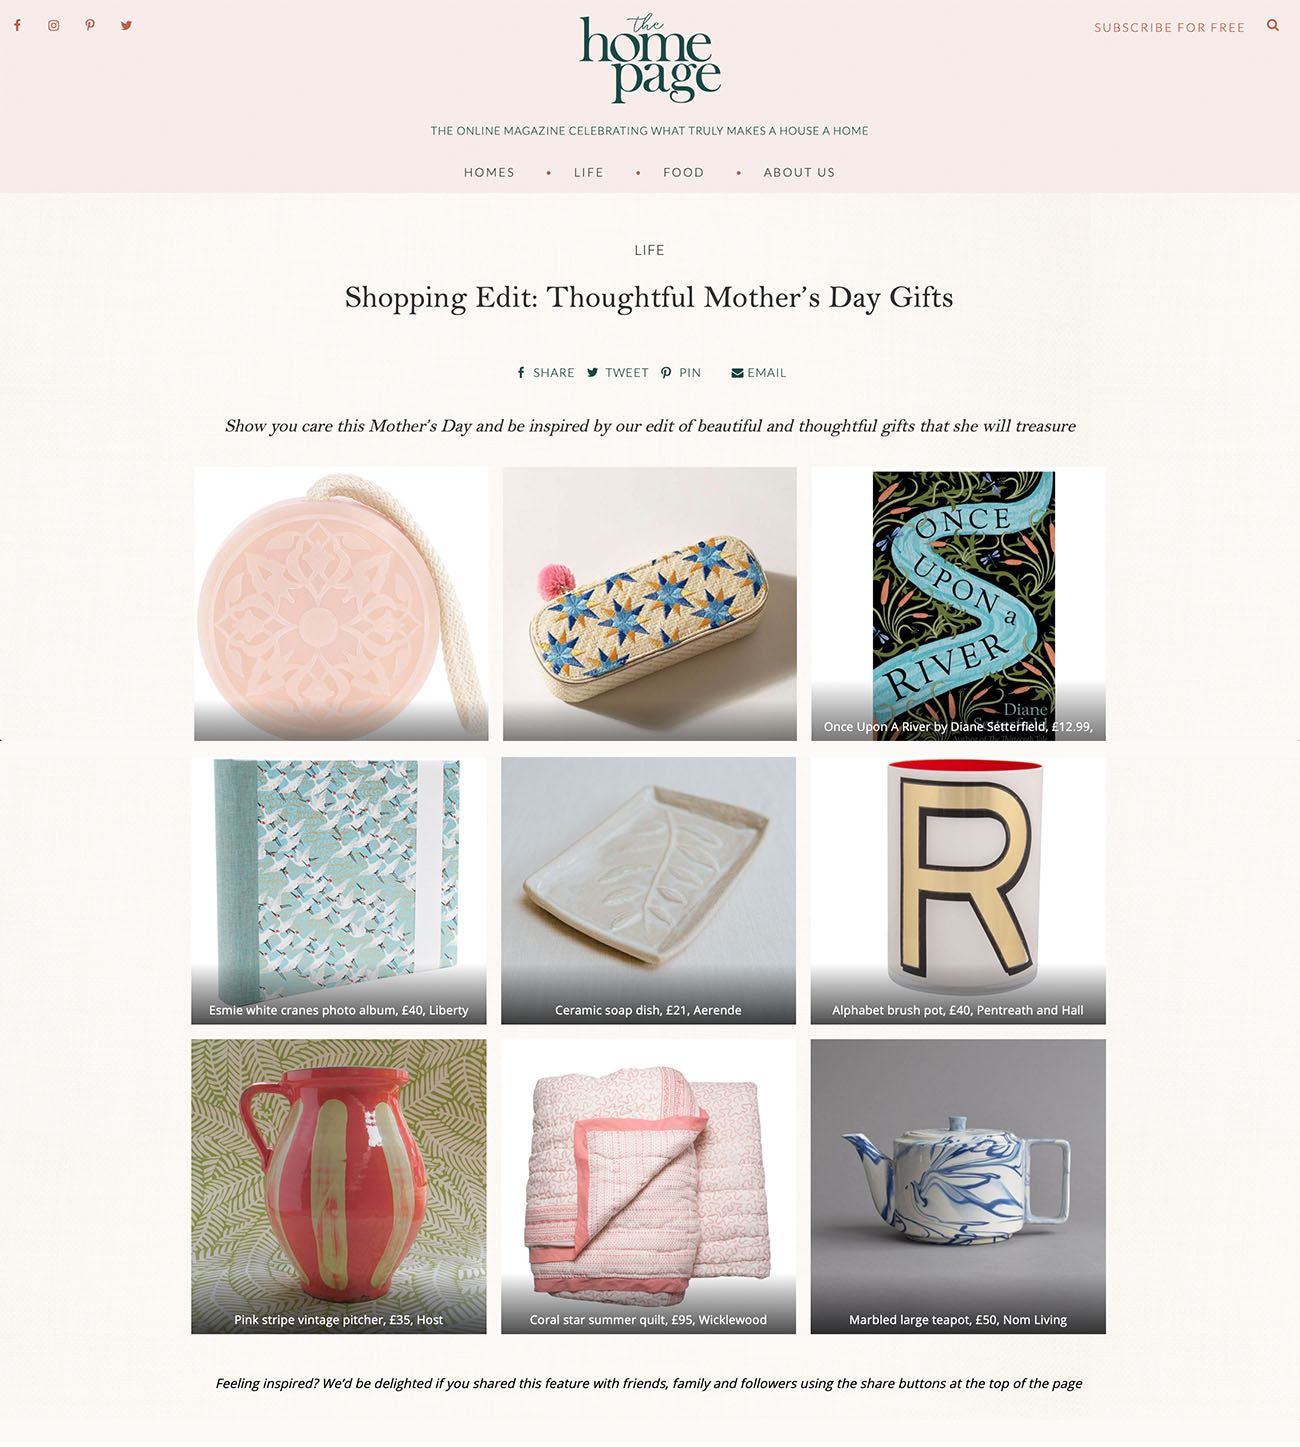 Wicklewood baby pink Coral Star quilt featured on The Homepage Mother's Day Gift Guide in April 2019